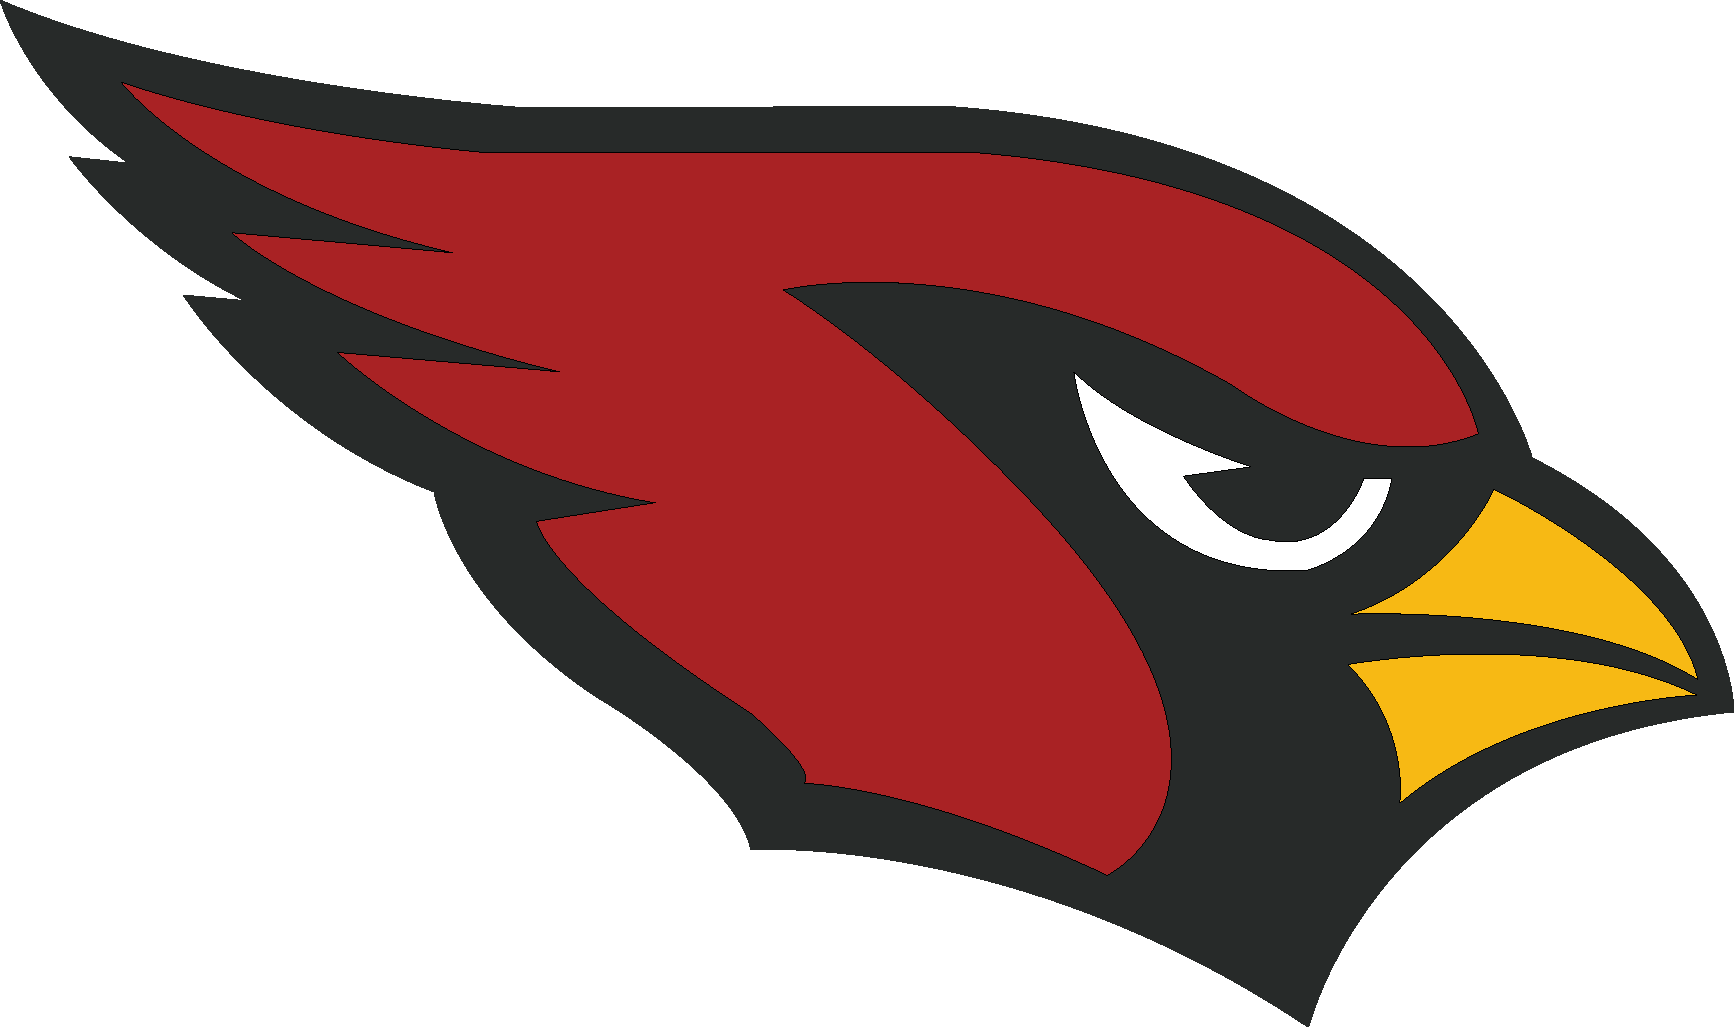 1734x1027 Arizona Cardinals Logo Vector Eps Free Download, Logo, Icons, Clipart